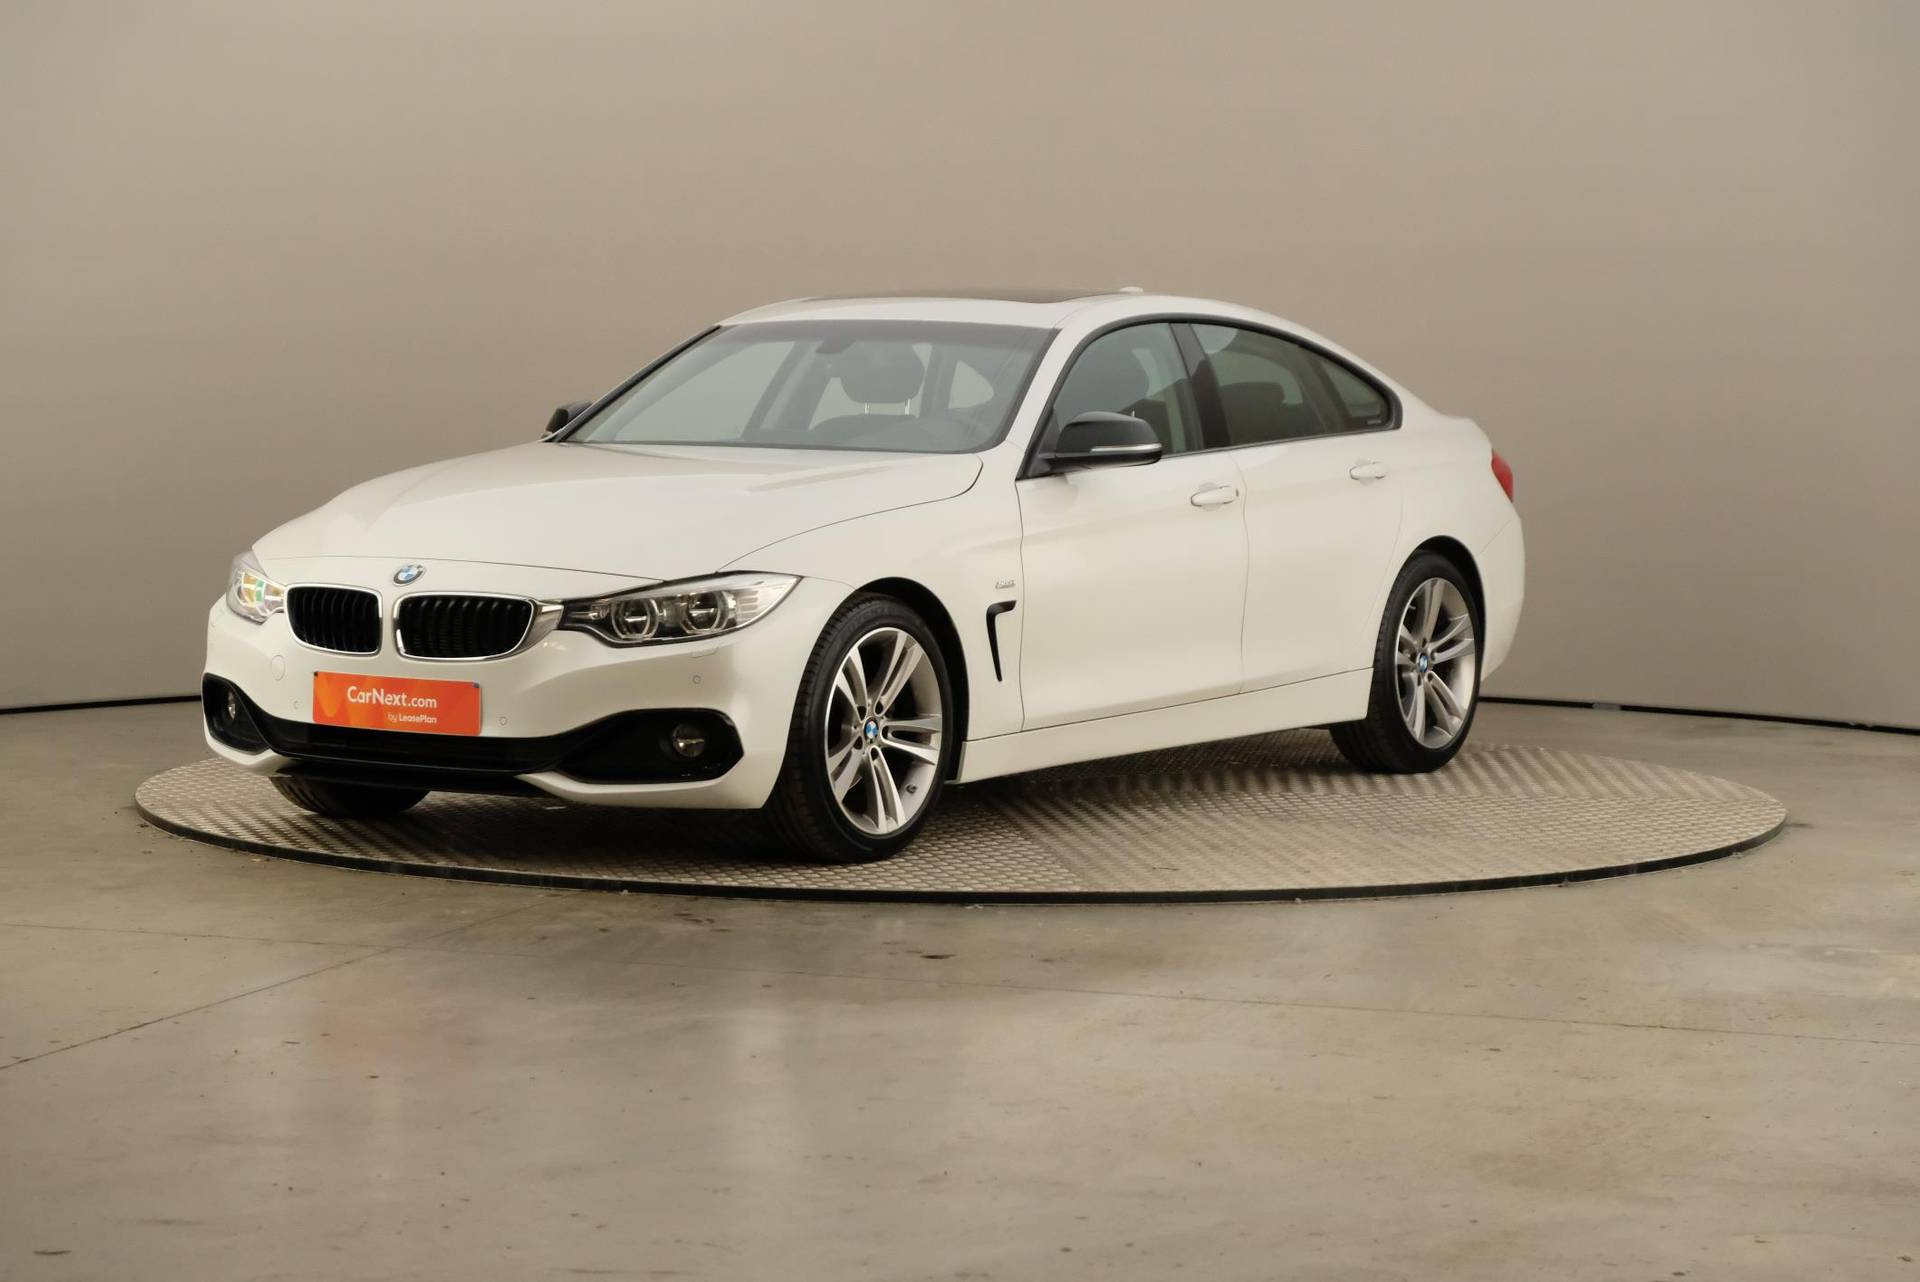 BMW 4 gran coupé 420 dA SPORT LINE LED GPS PROF PDC OPEN DAK/TO HARMAN KARDON, 360-image35